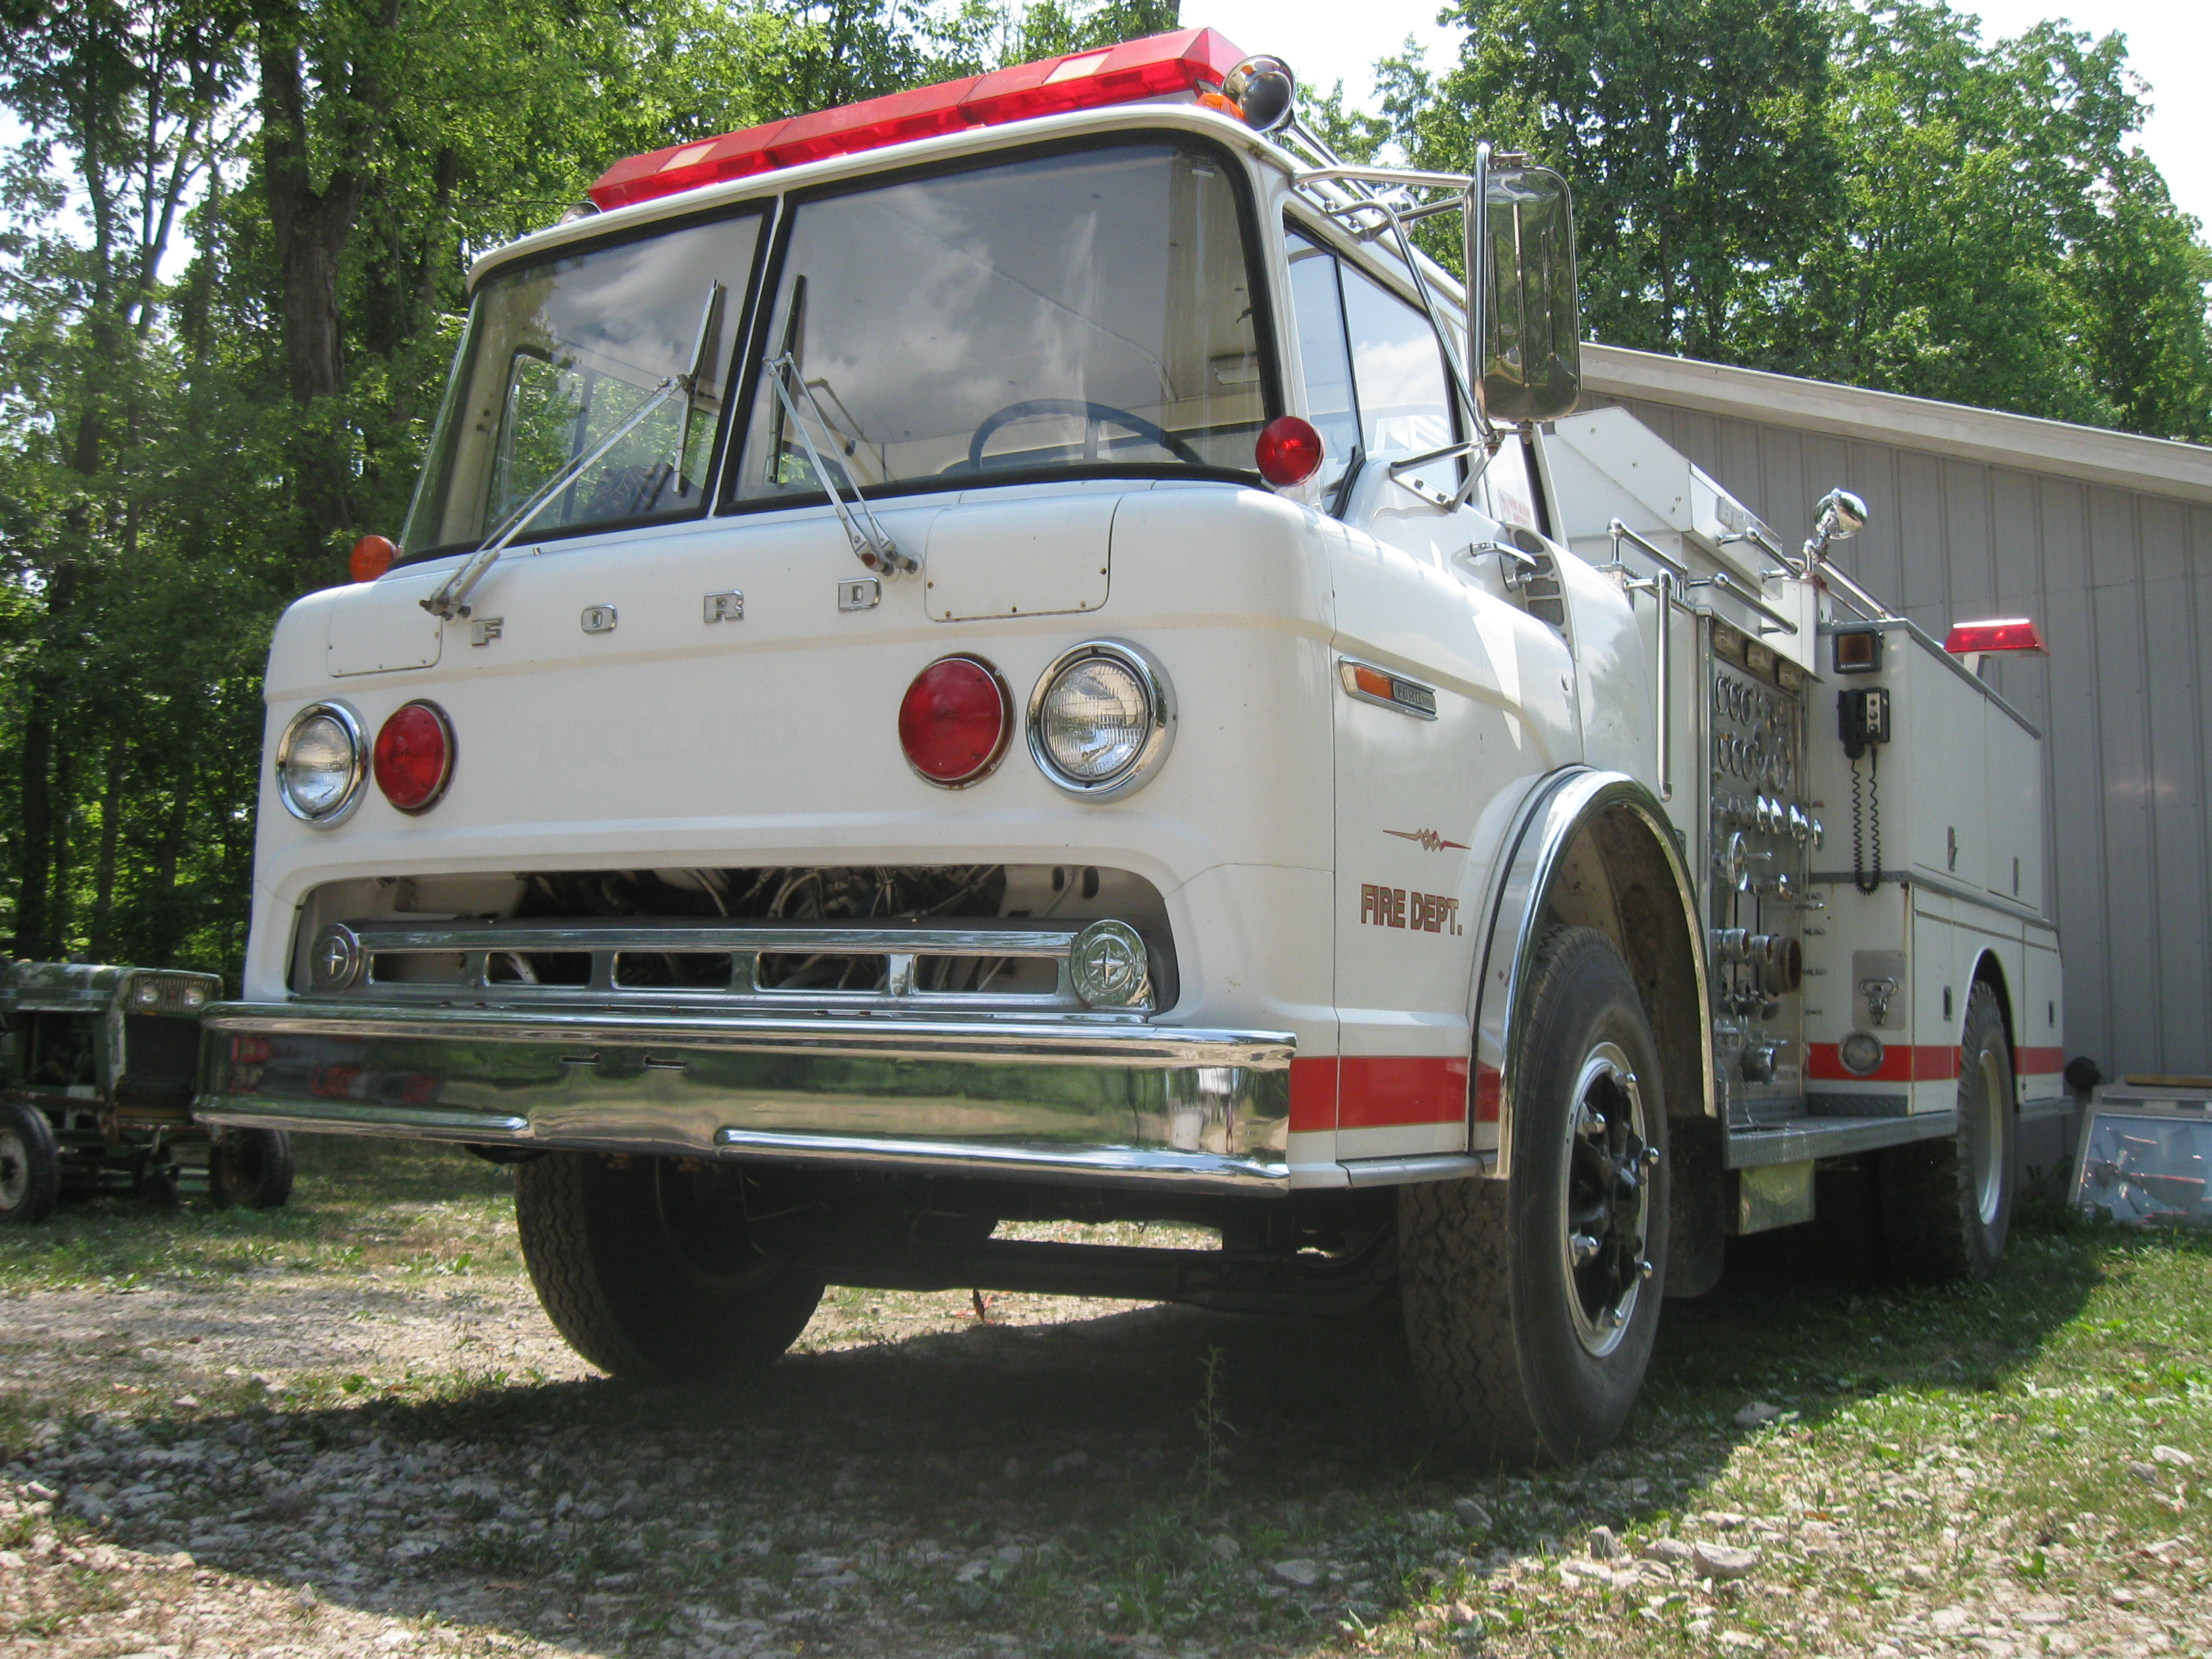 Curbside Classic: The Almost Immortal Ford C-Series